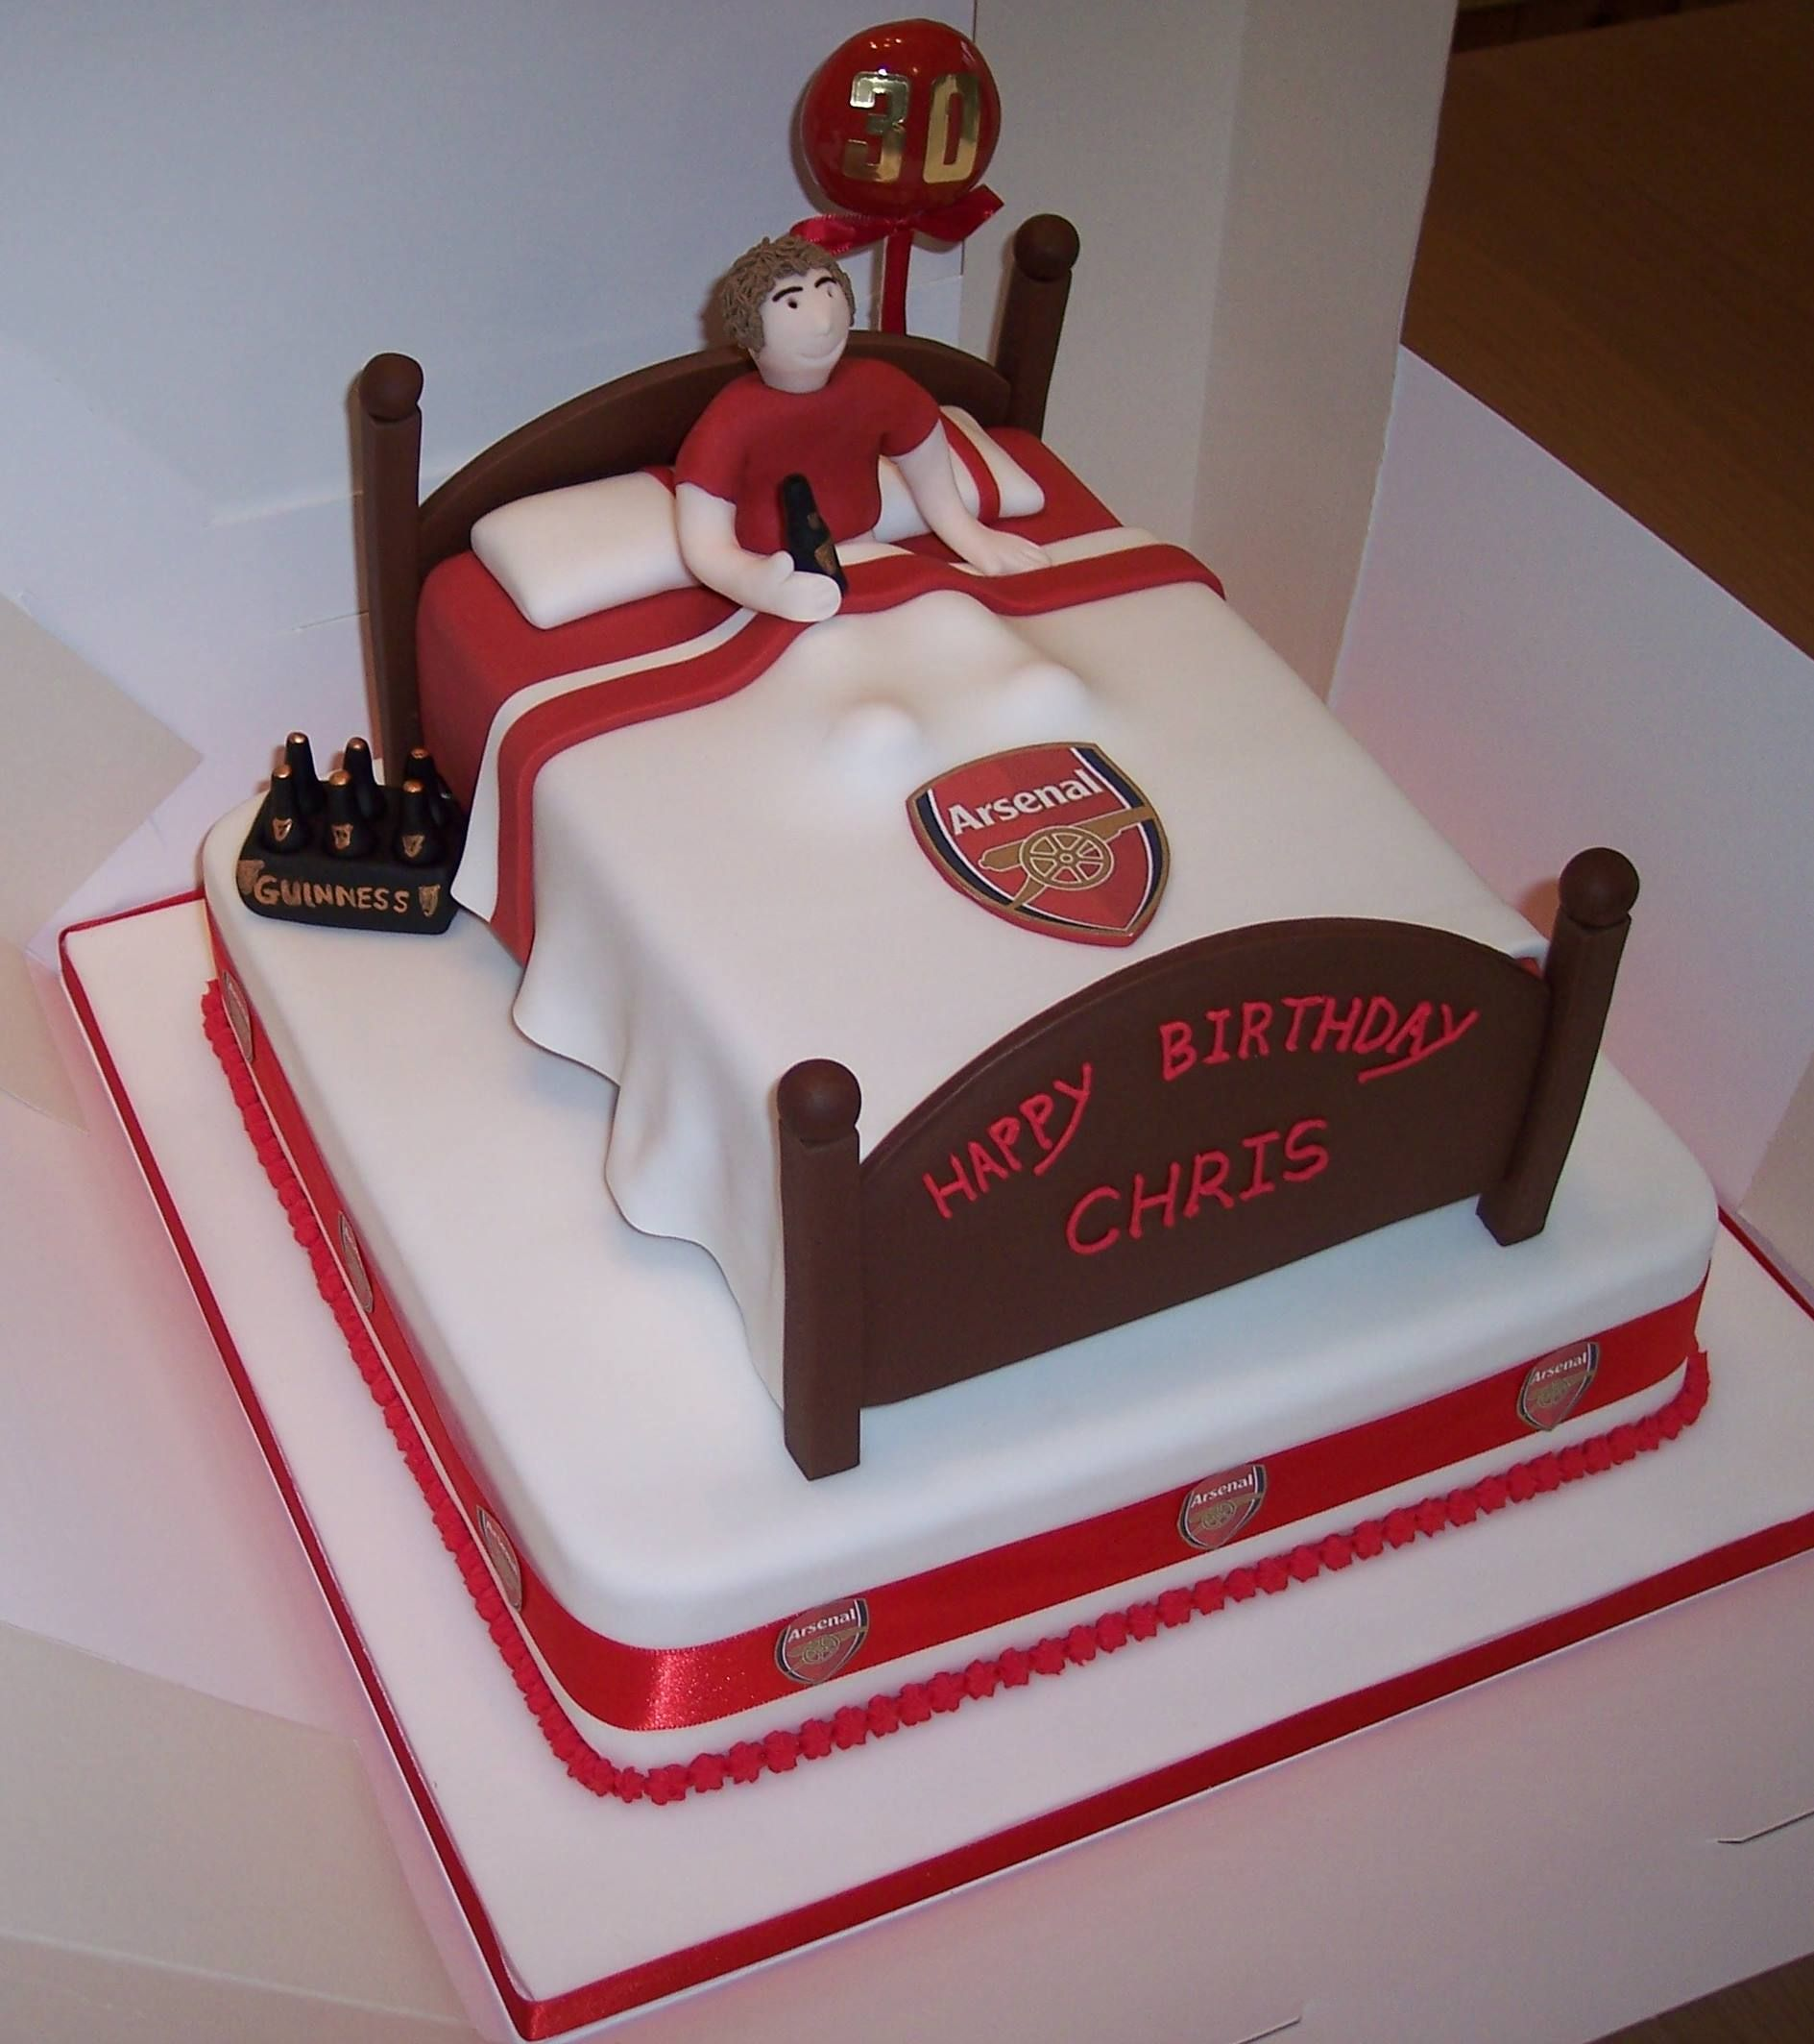 Arsenal Bed cake ideas Pinterest Arsenal 3d cakes and Cake